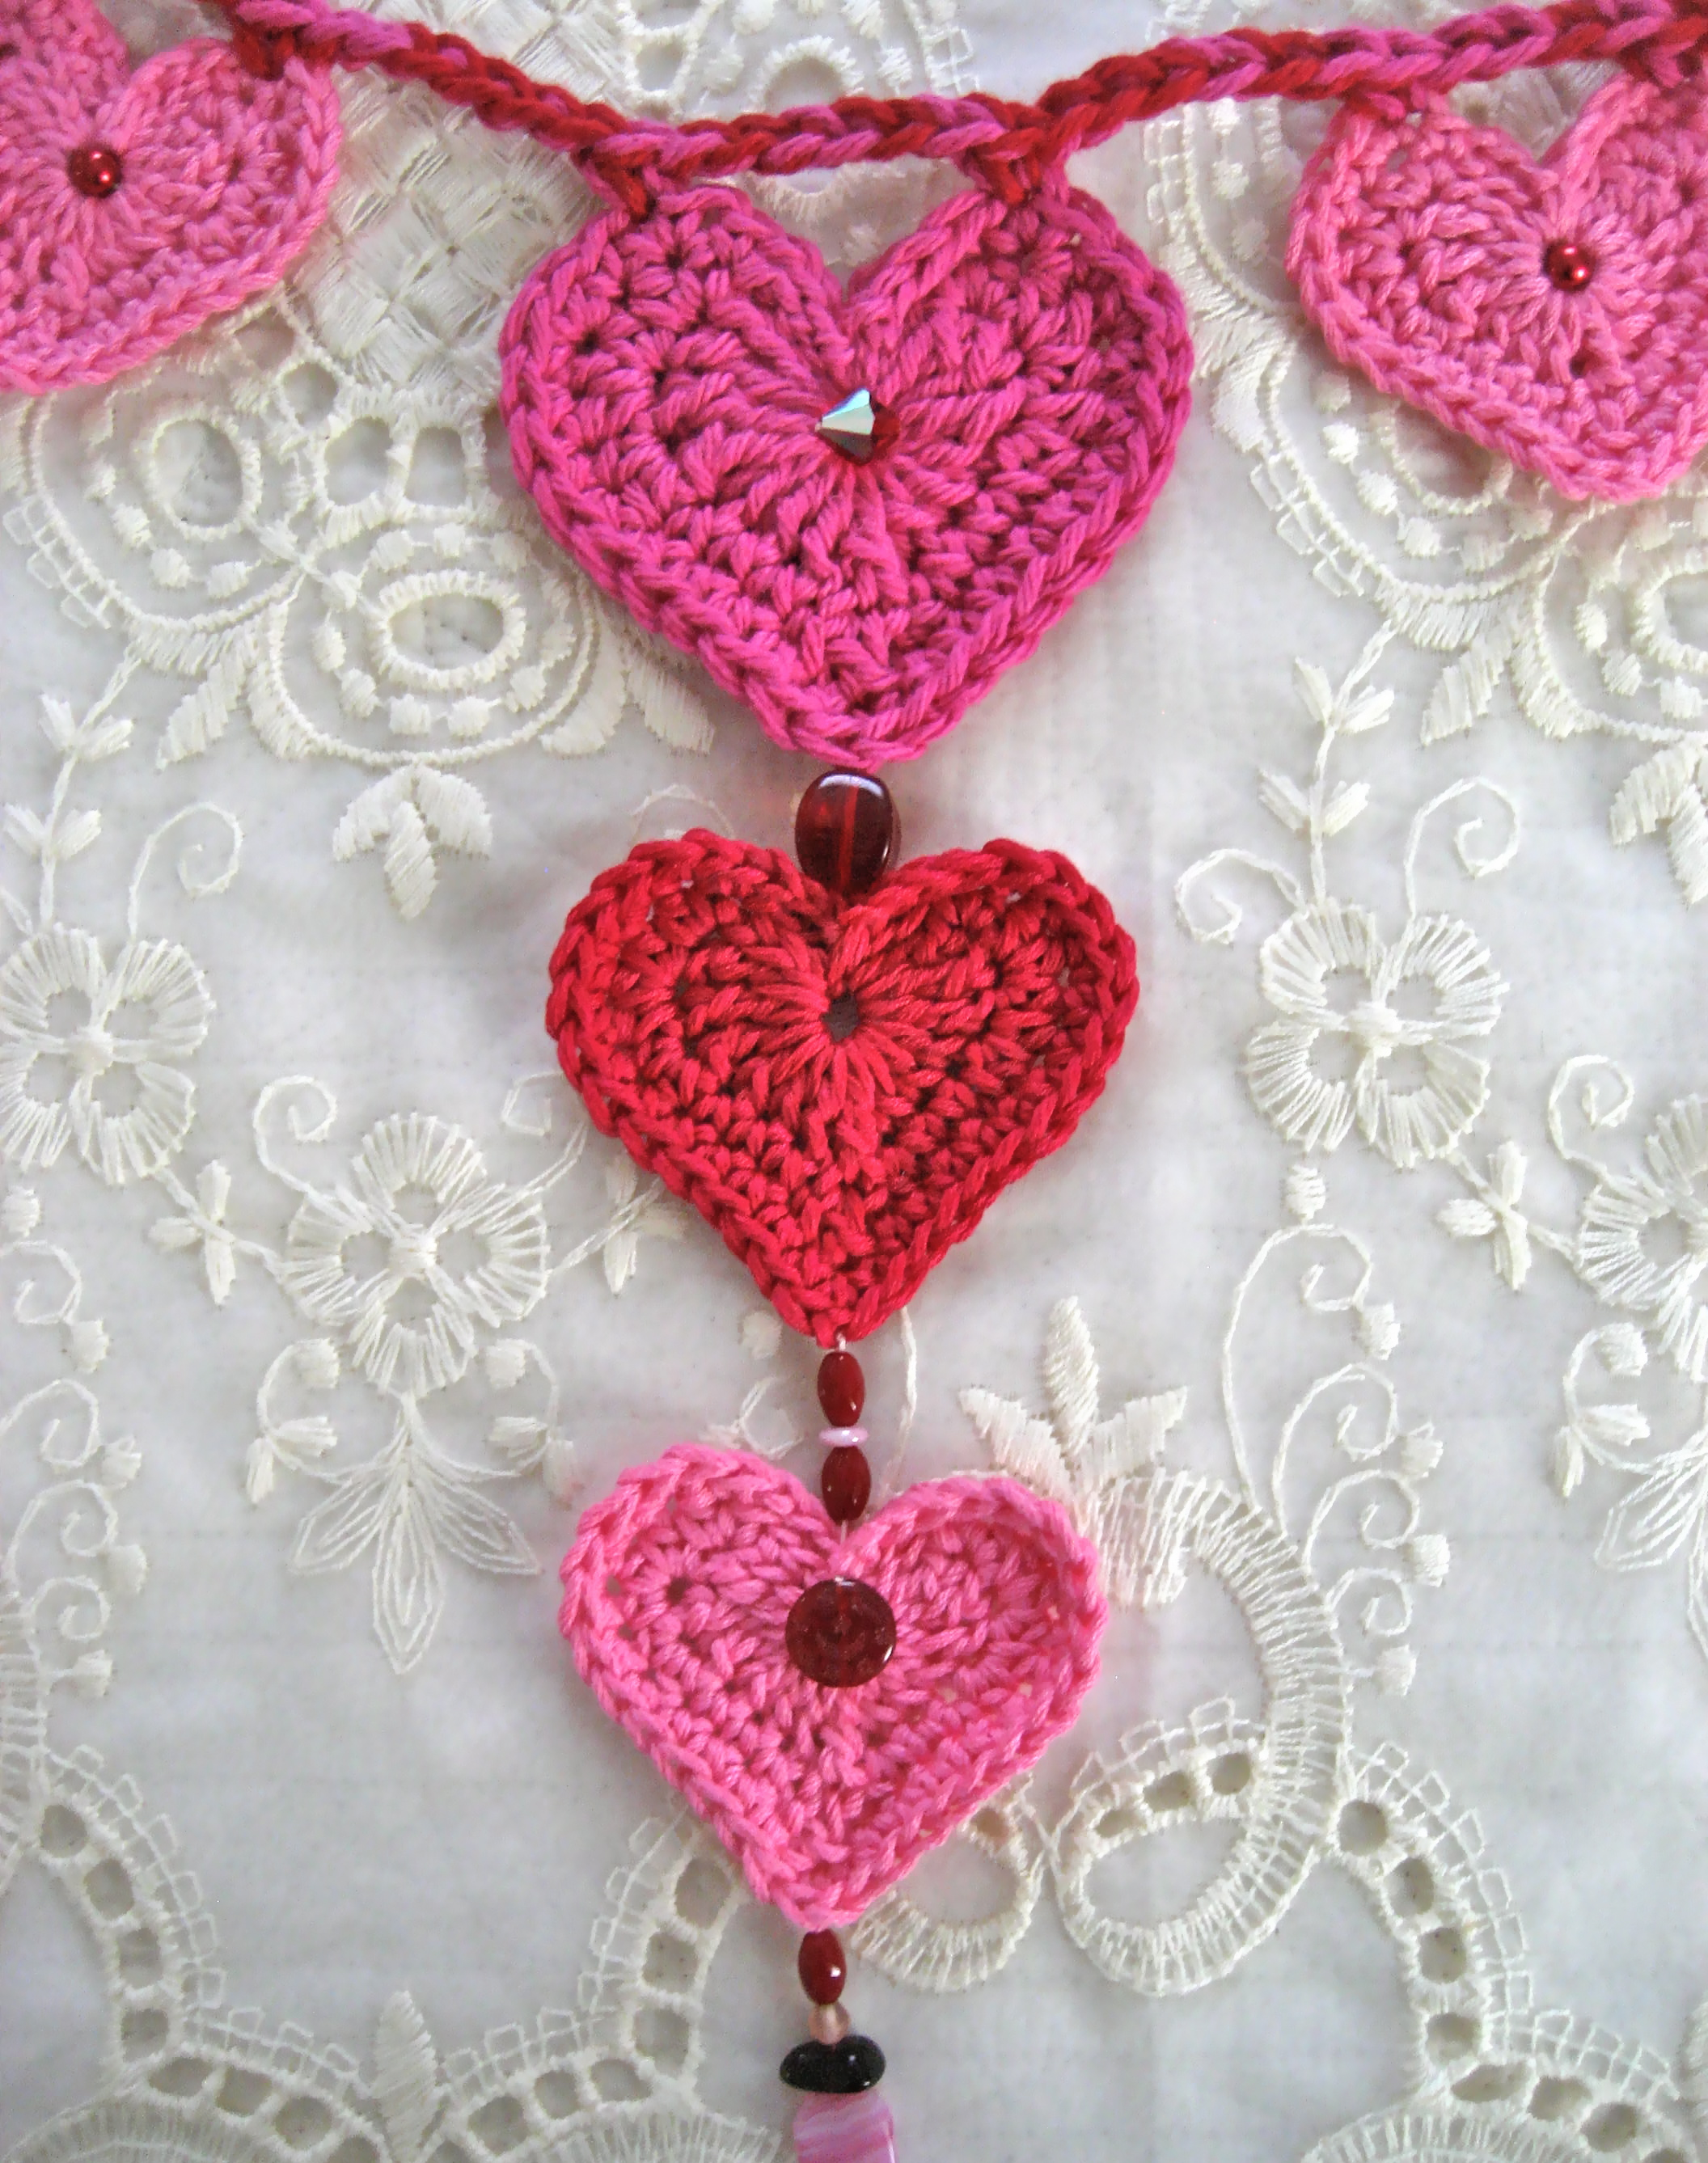 Crochet A Heart : Crochet Heart New Calendar Template Site